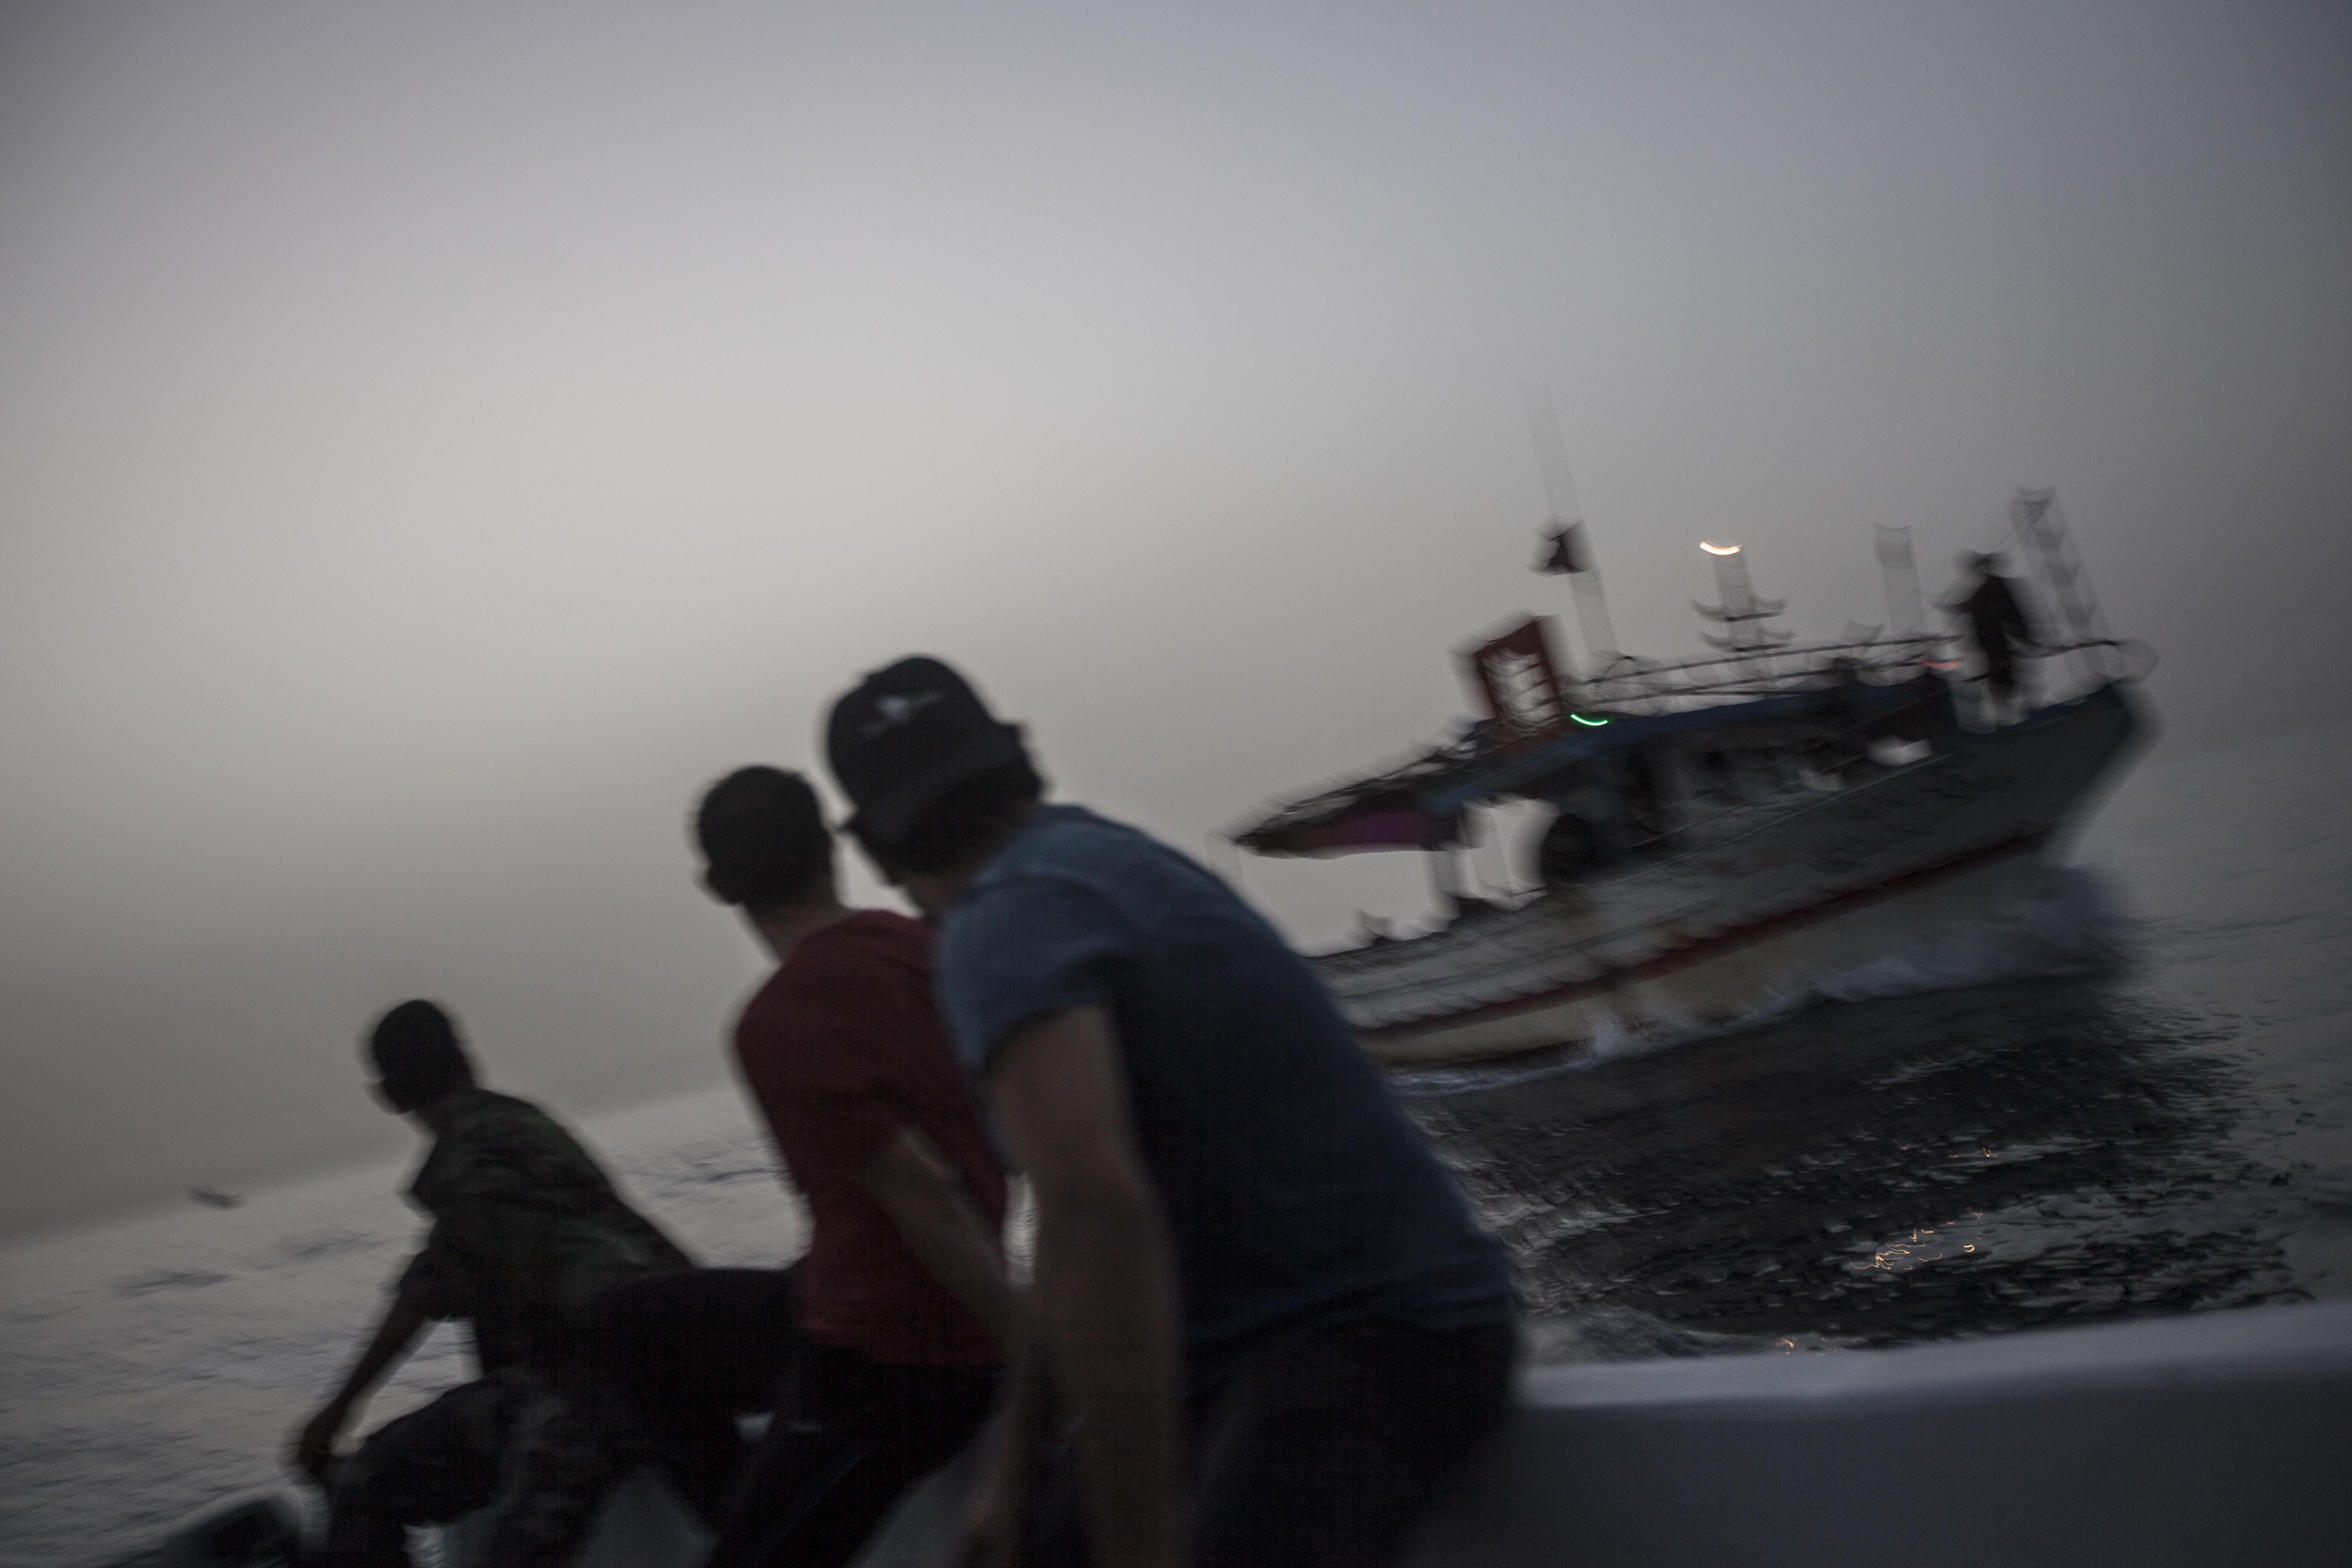 Libyan coastguards escort a boat back to Zawiyah after it was intercepted carrying out illegal activities.